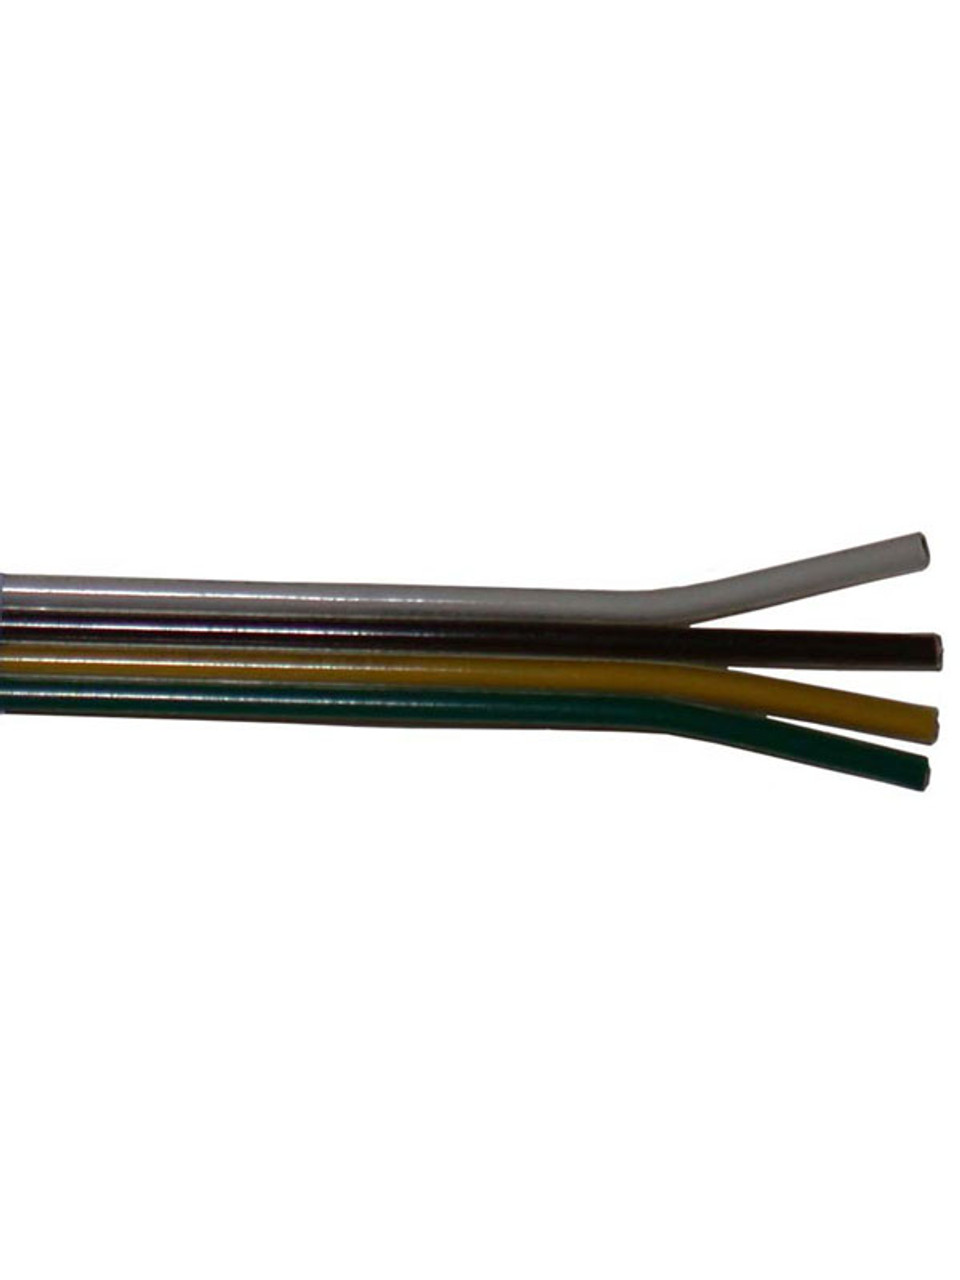 P4185 --- Parallel Trailer Cable, 4 Wire, 18 Gauge